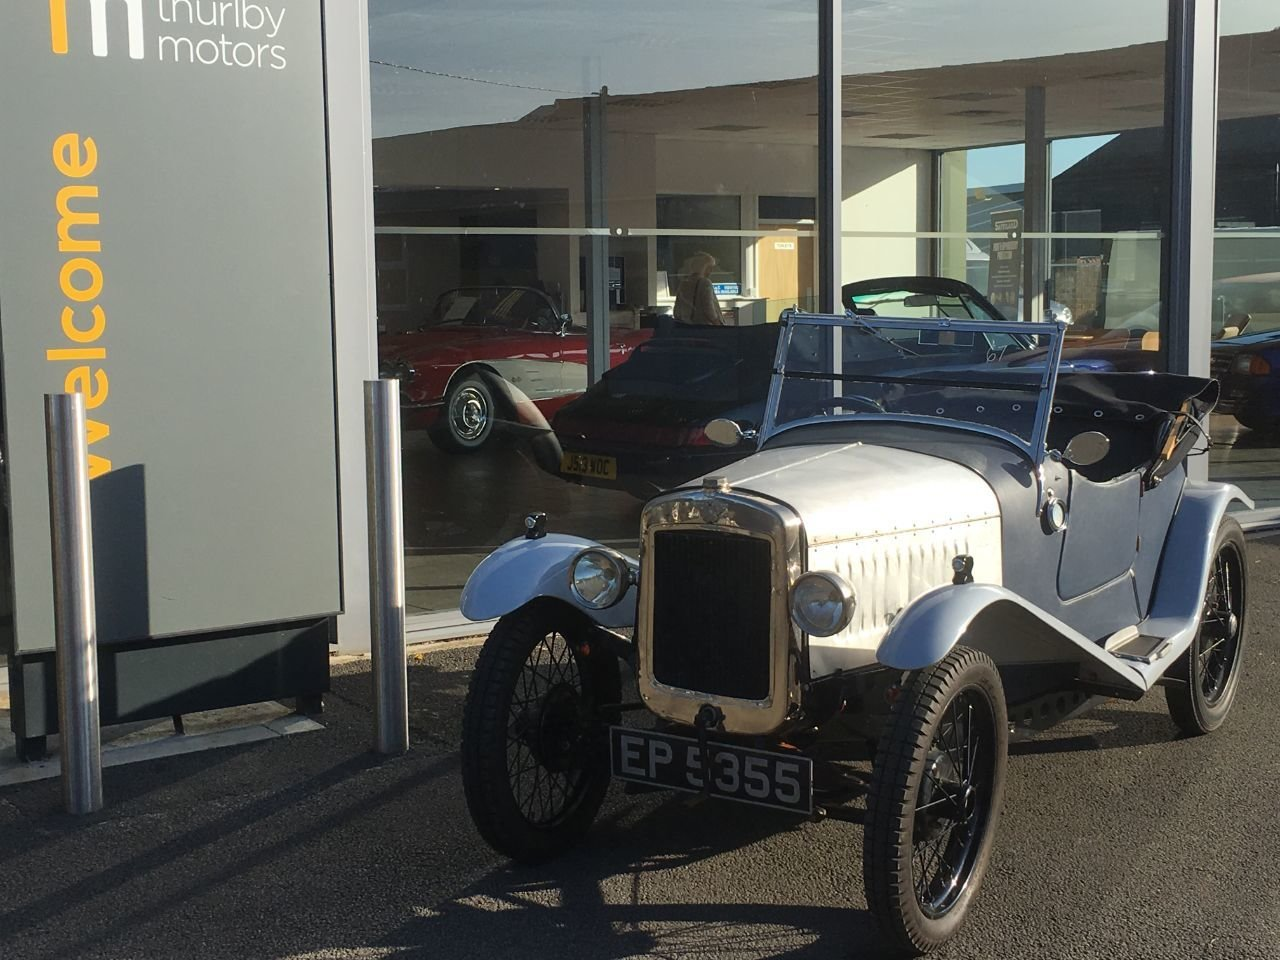 1932 AUSTIN GORDON ENGLAND For Sale (picture 1 of 4)